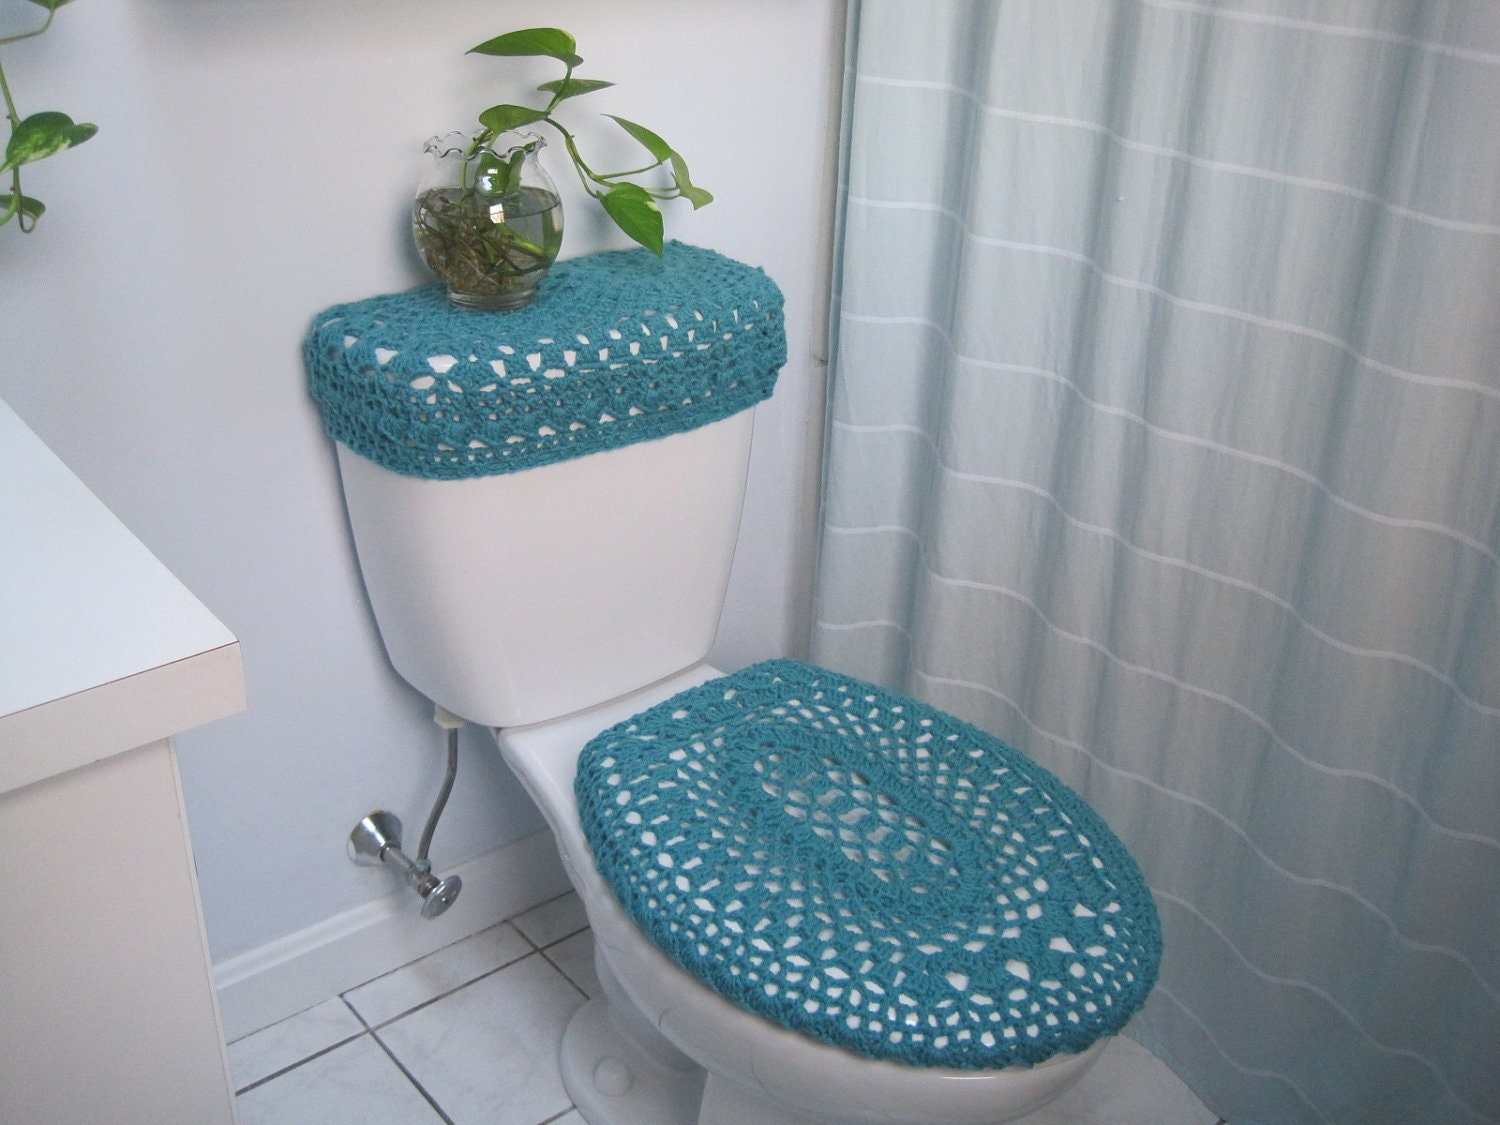 Set Of 2 Crochet Covers For Toilet Seat Toilet Tank Lid By Ytang